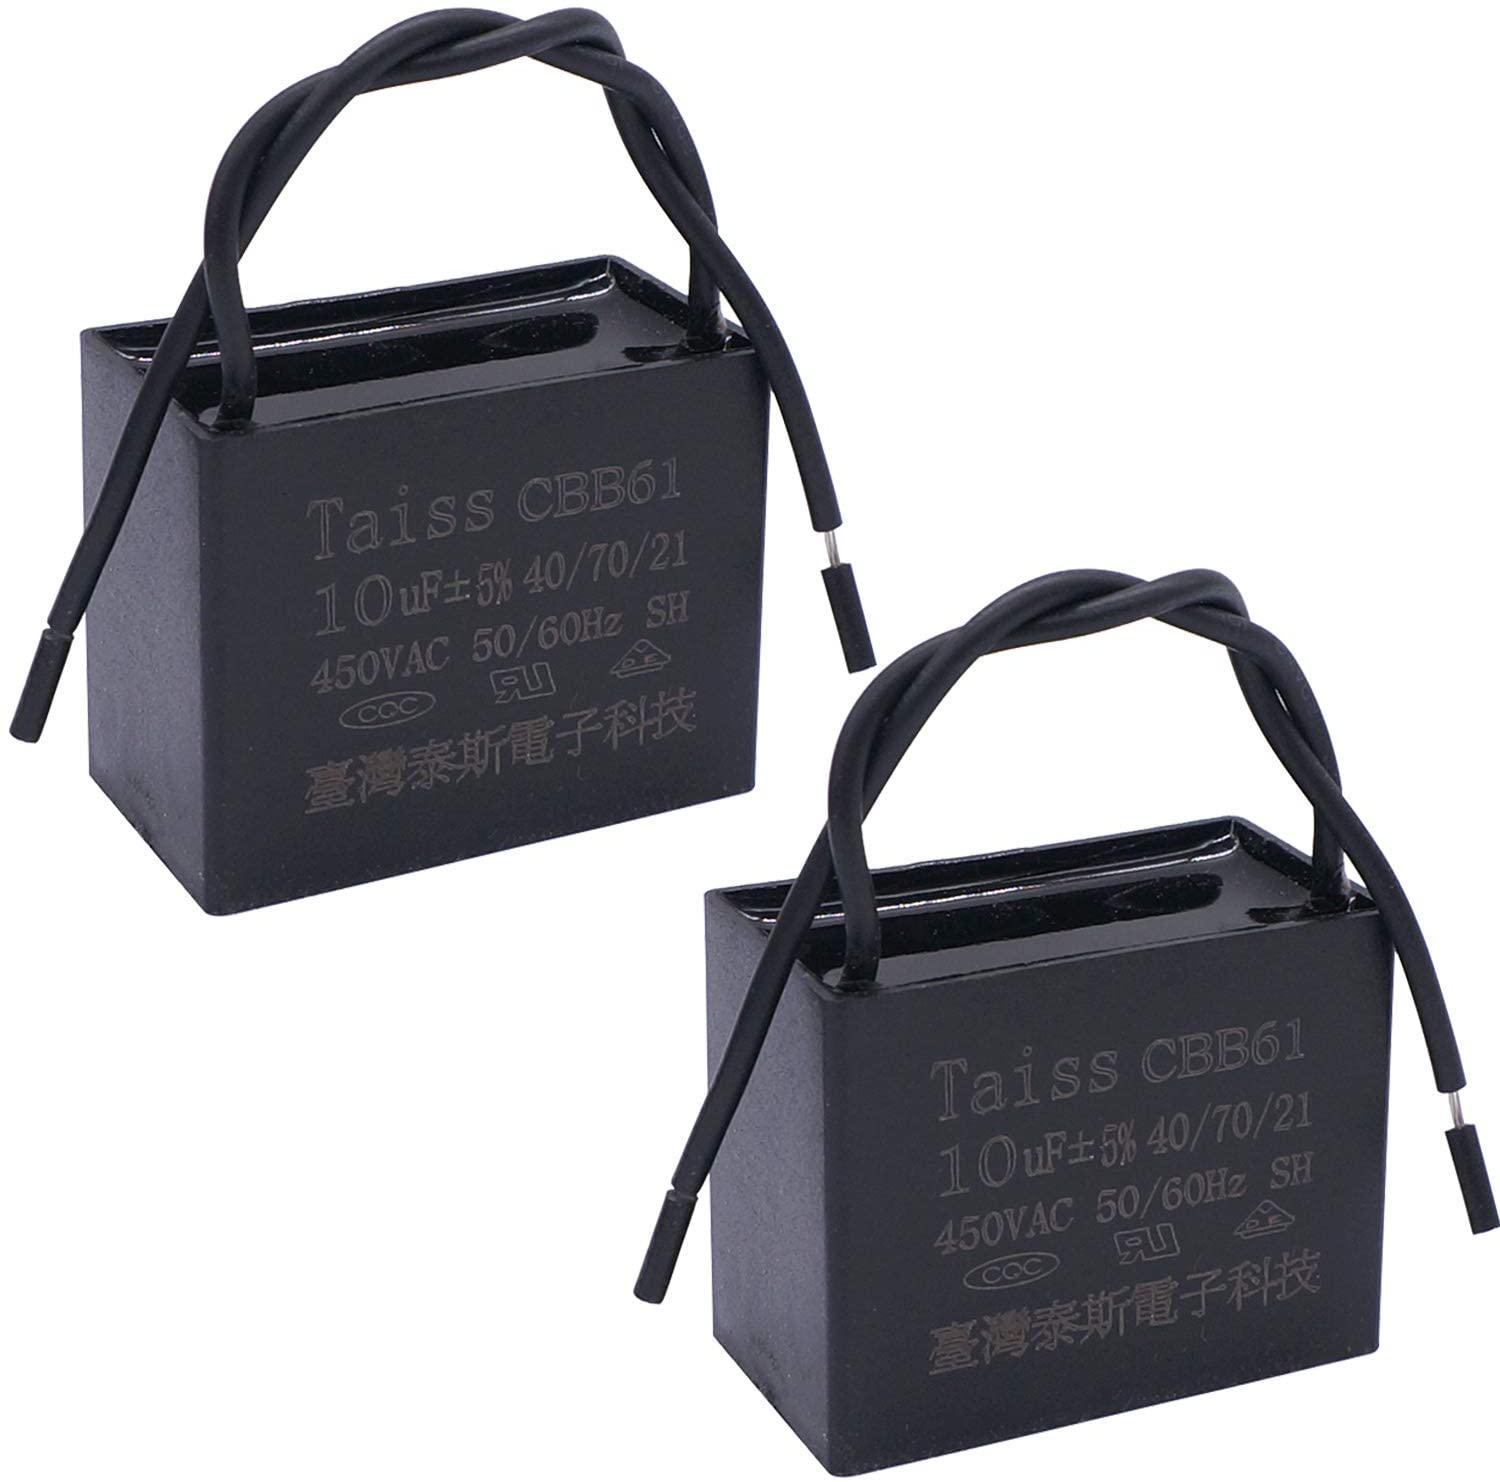 Taiss / CBB61 10uf Ceiling Fan Capacitor for New Tech 2 Wire 50/60Hz 450VAC (2 pack)